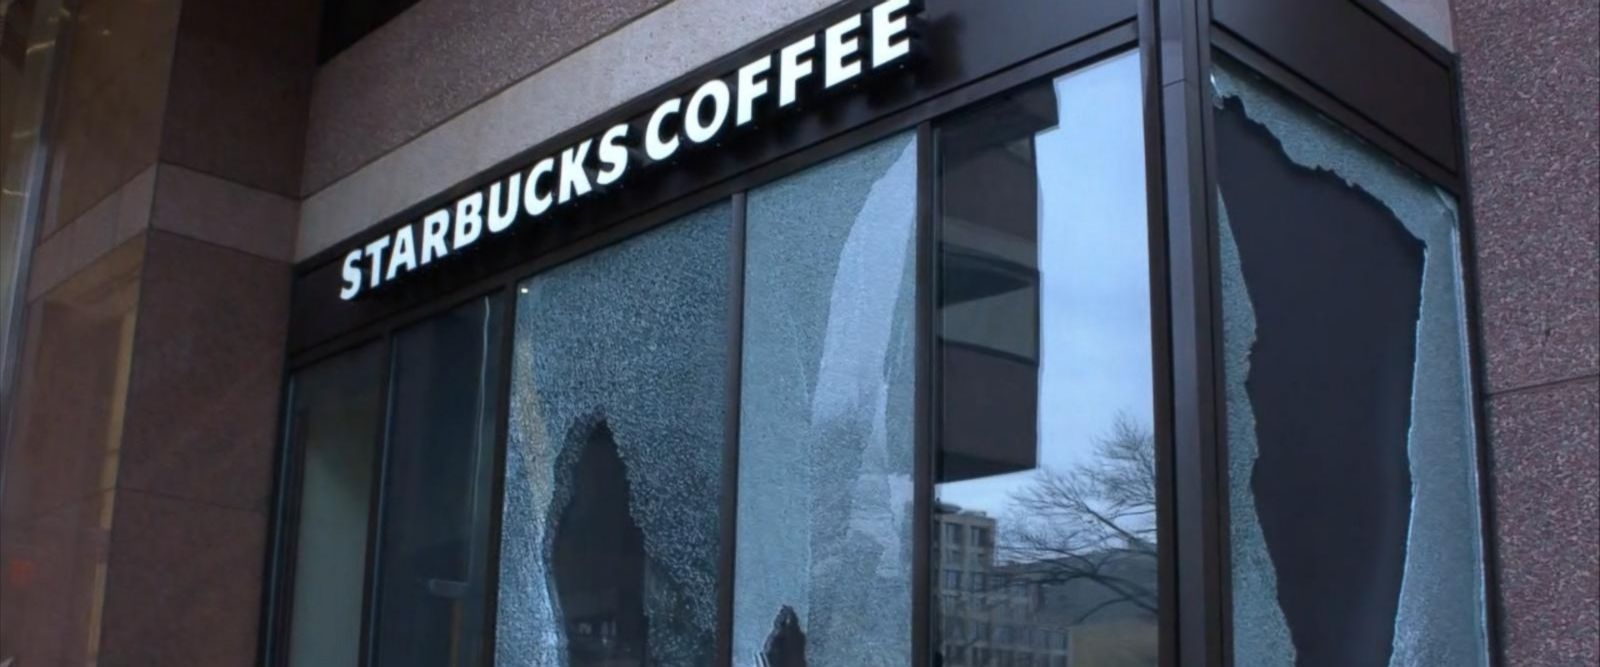 VIDEO: Vandalized Starbucks in Washington, D.C